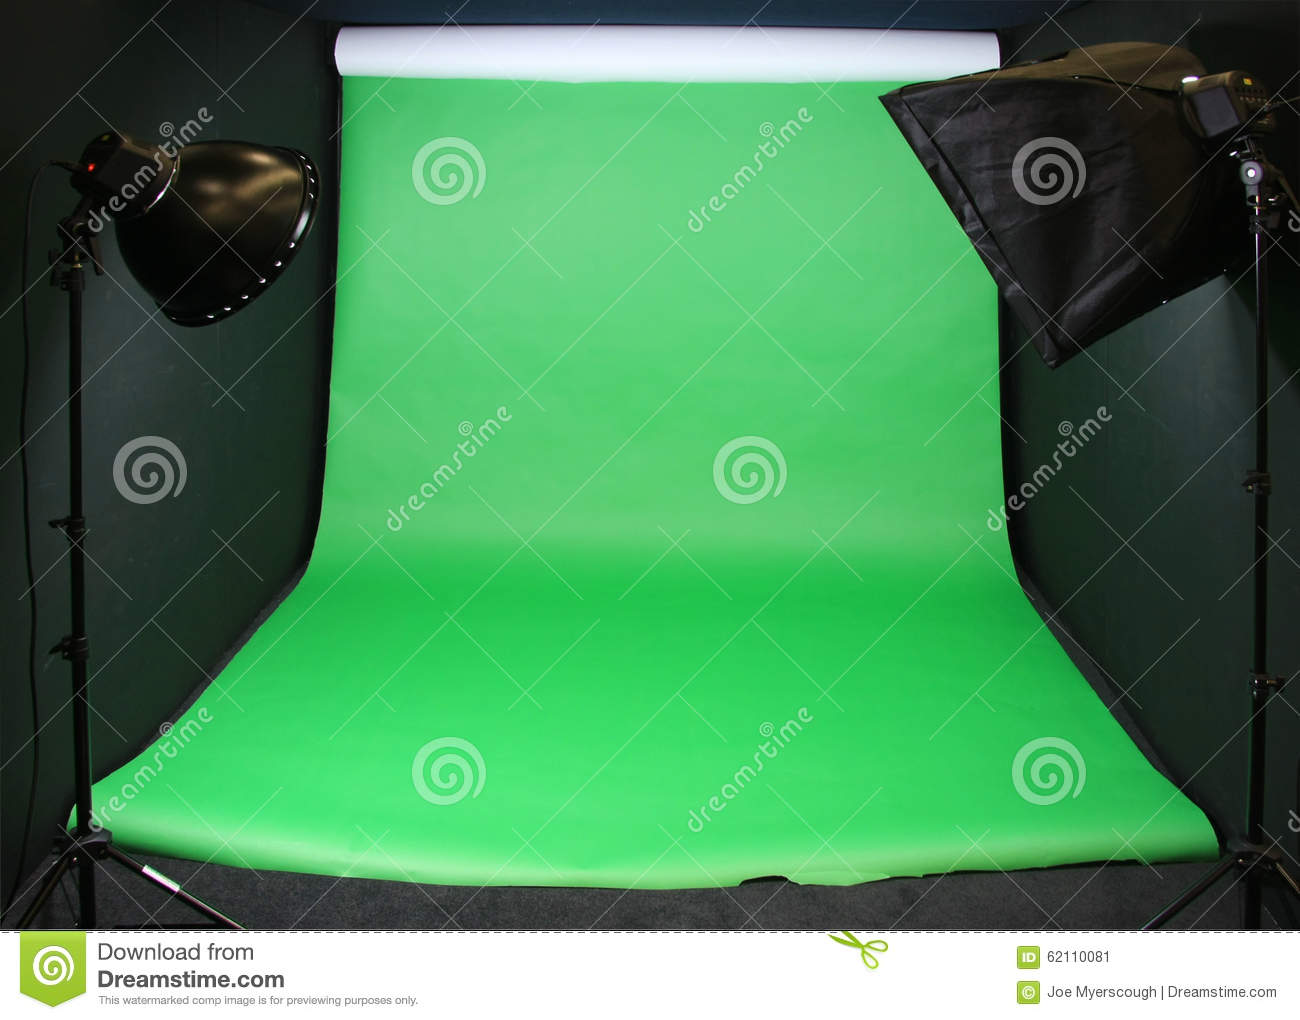 how to add background to a green screen photo